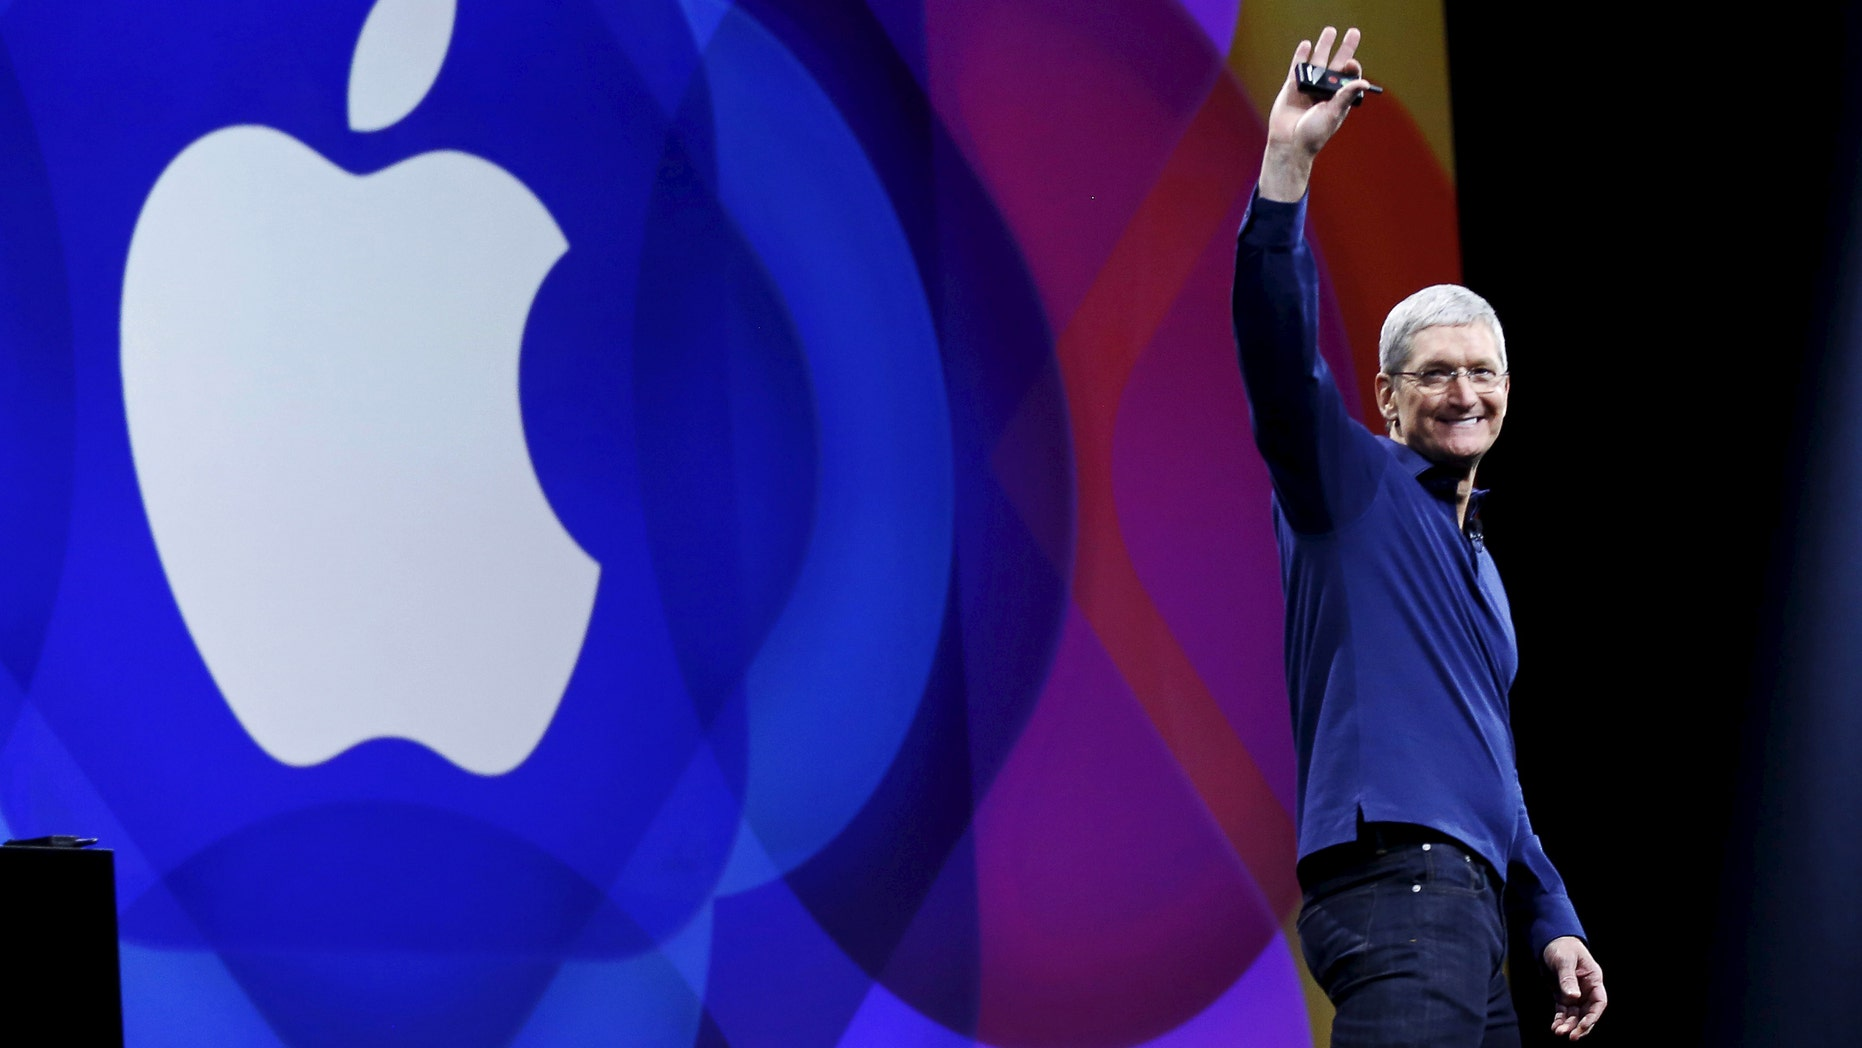 File photo - Apple CEO Tim Cook waves as he arrives on stage to deliver his keynote address at the Worldwide Developers Conference in San Francisco, California, United States June 8, 2015.